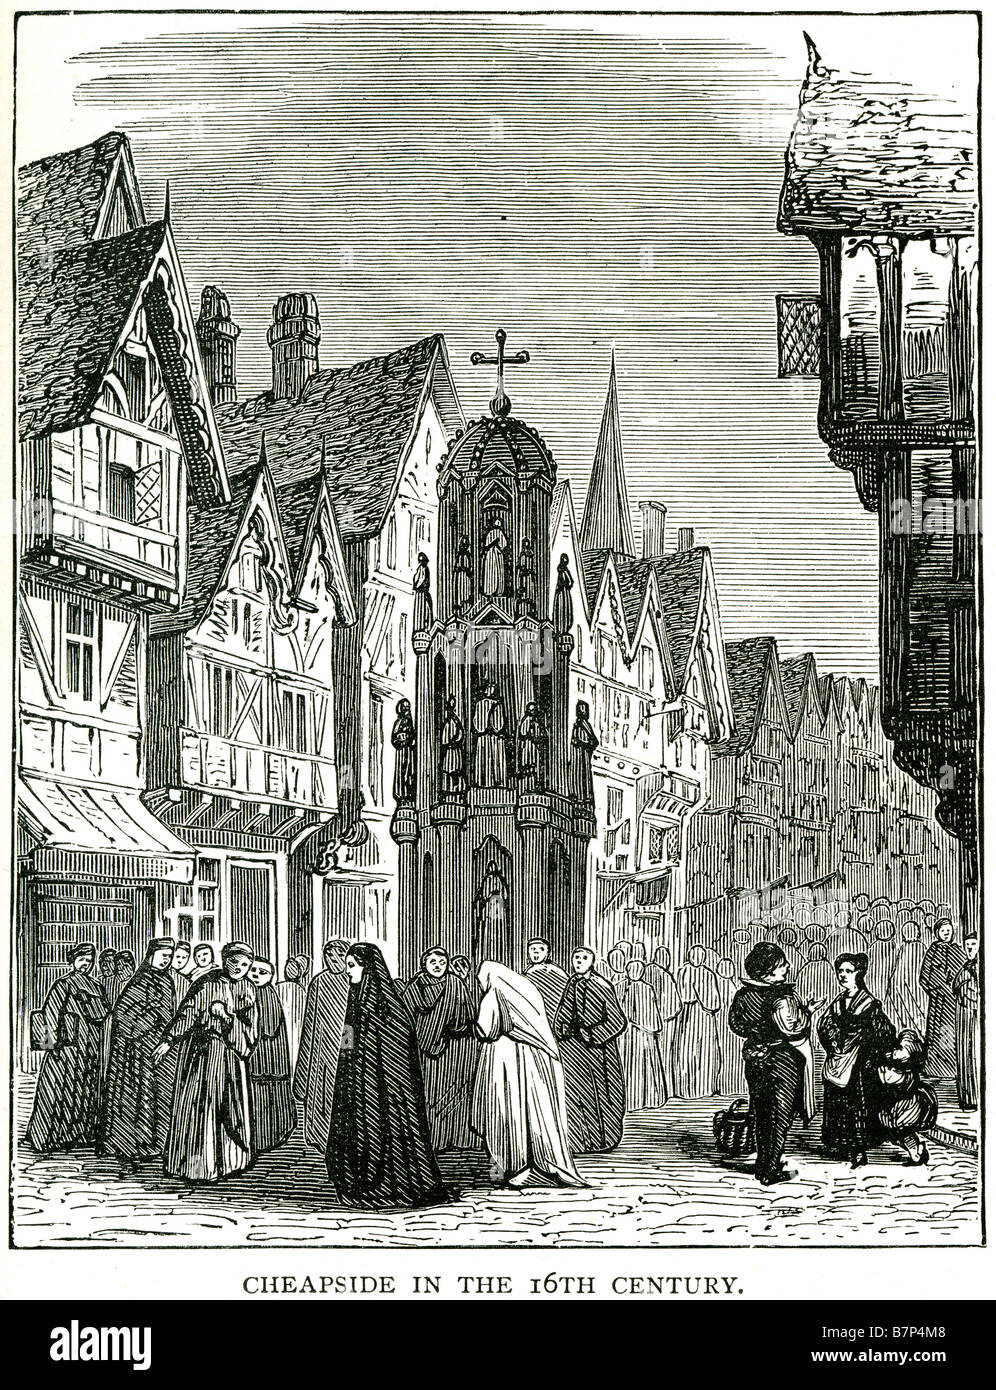 cheapside 16th century street road Cheapside is a street in Cheap ward of the City of London that links Newgate Stock Photo